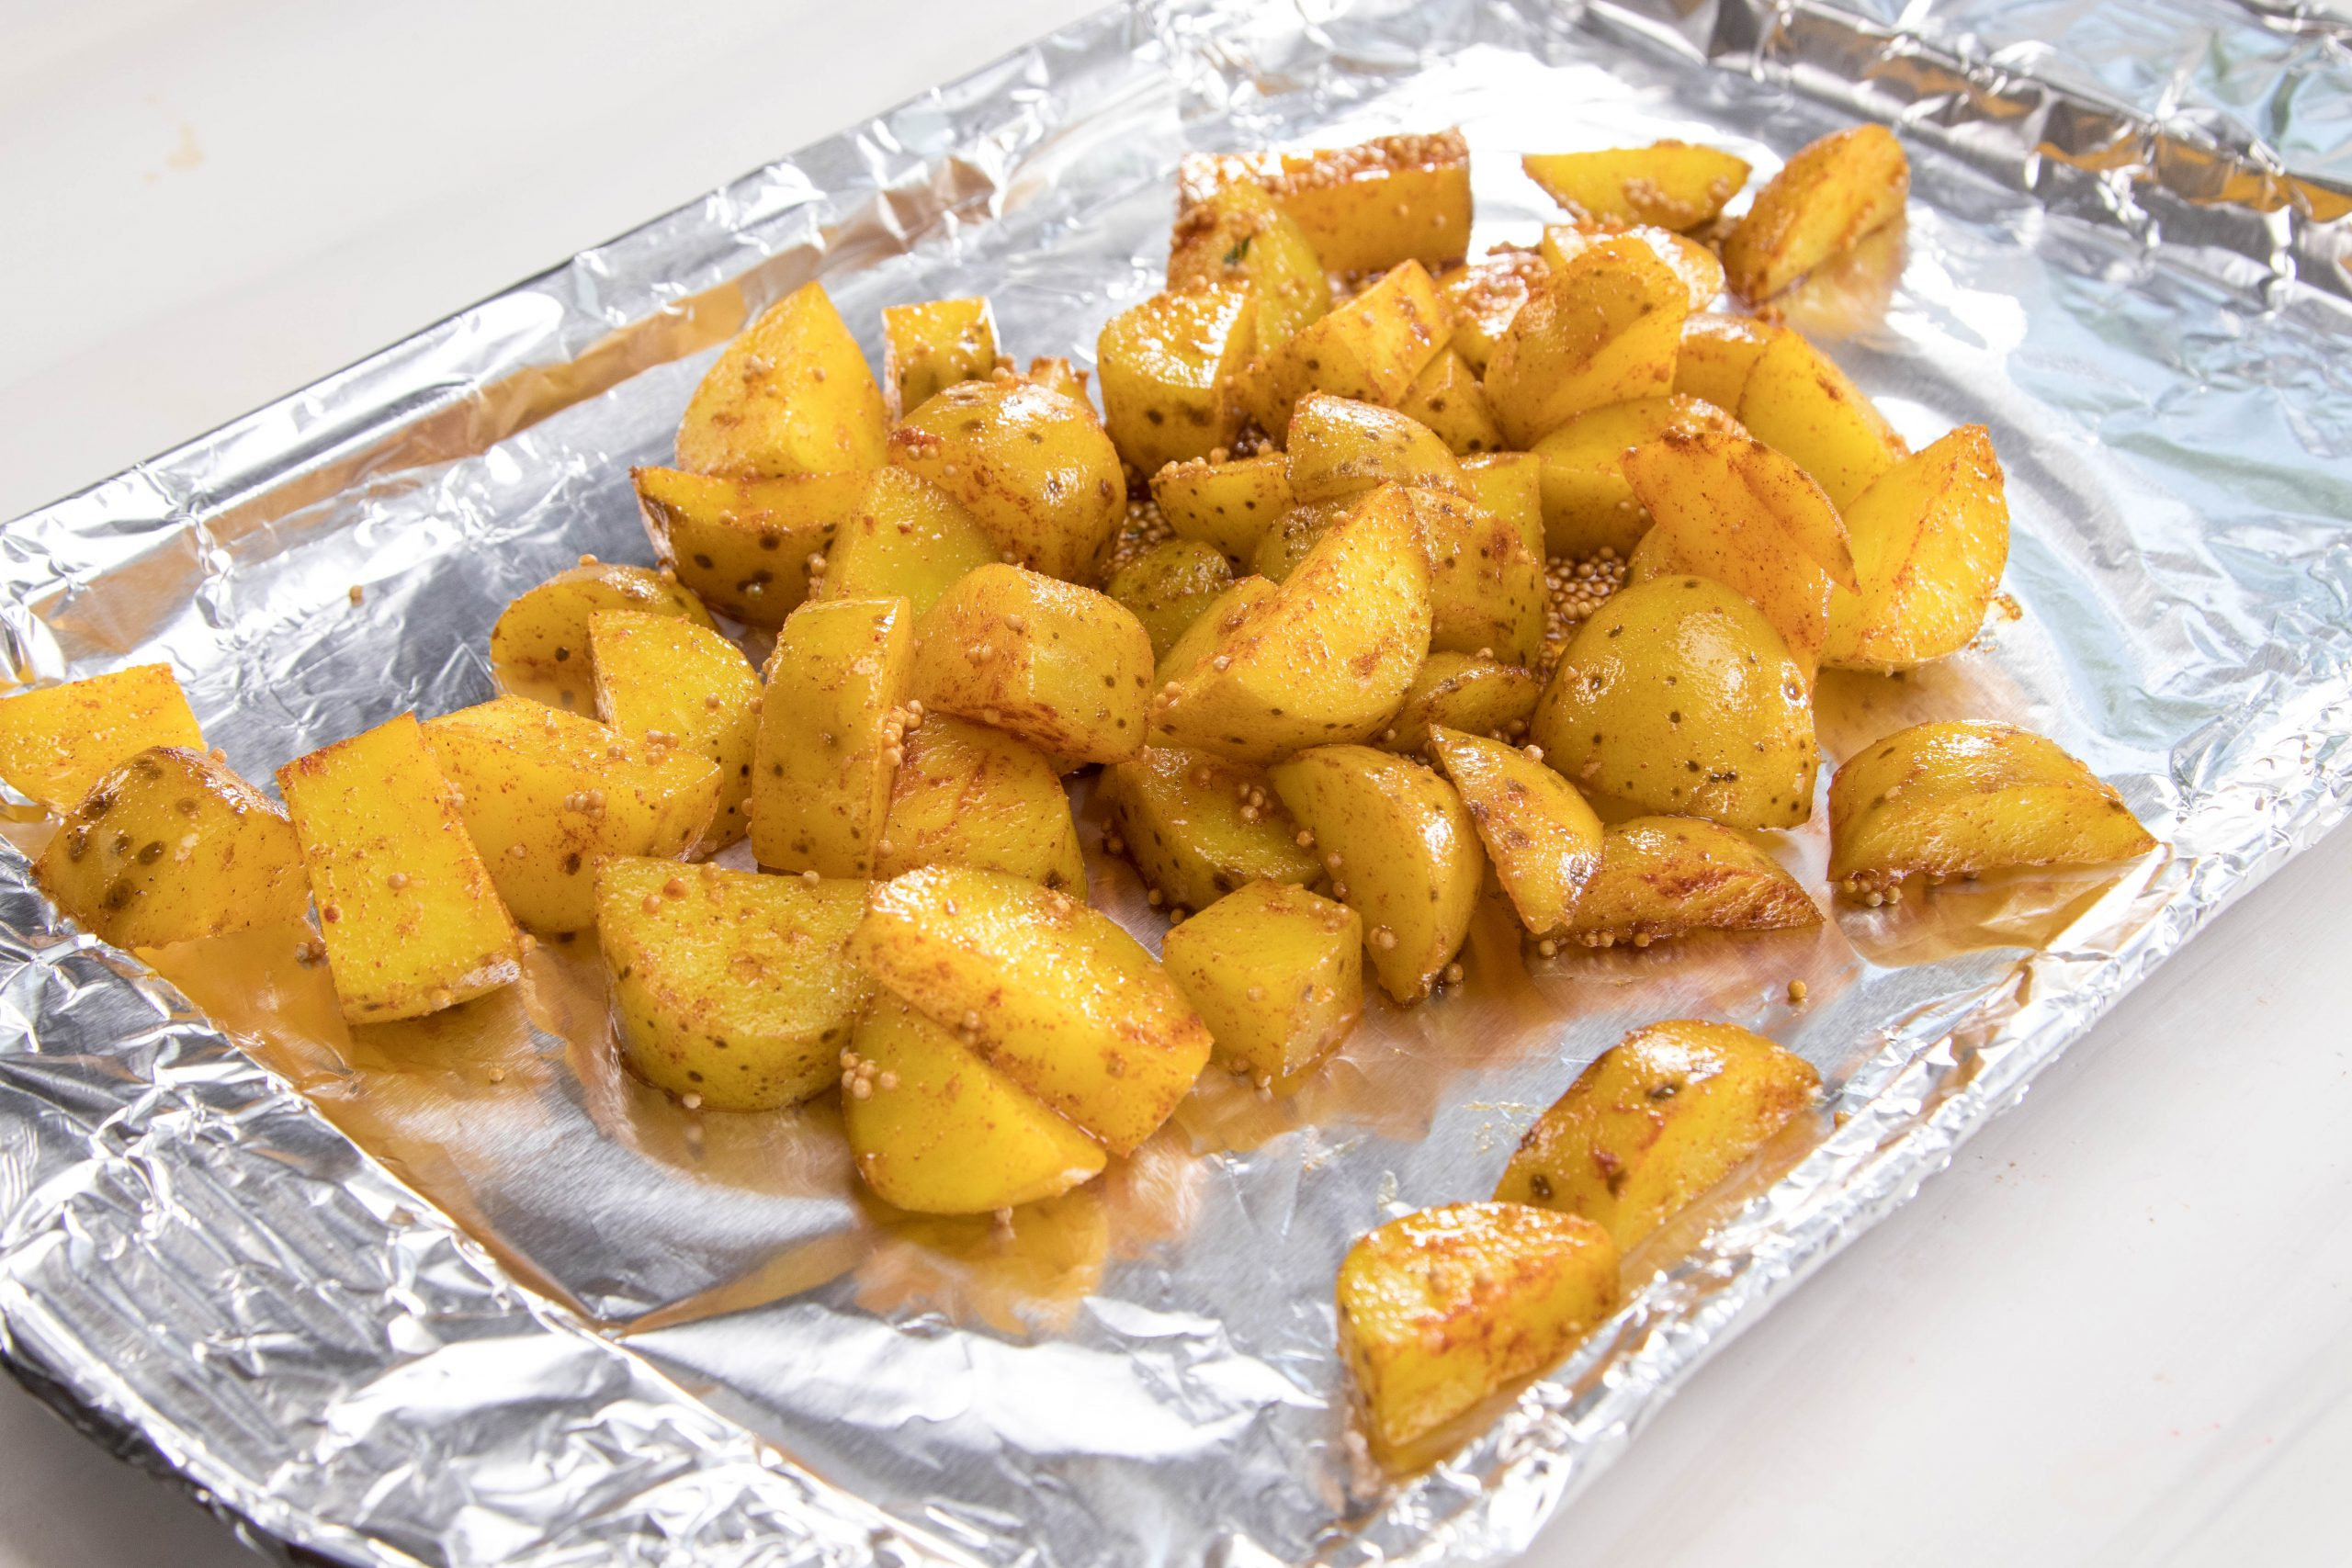 A foil-wrapped pan with seasoned, cut potatoes on it.